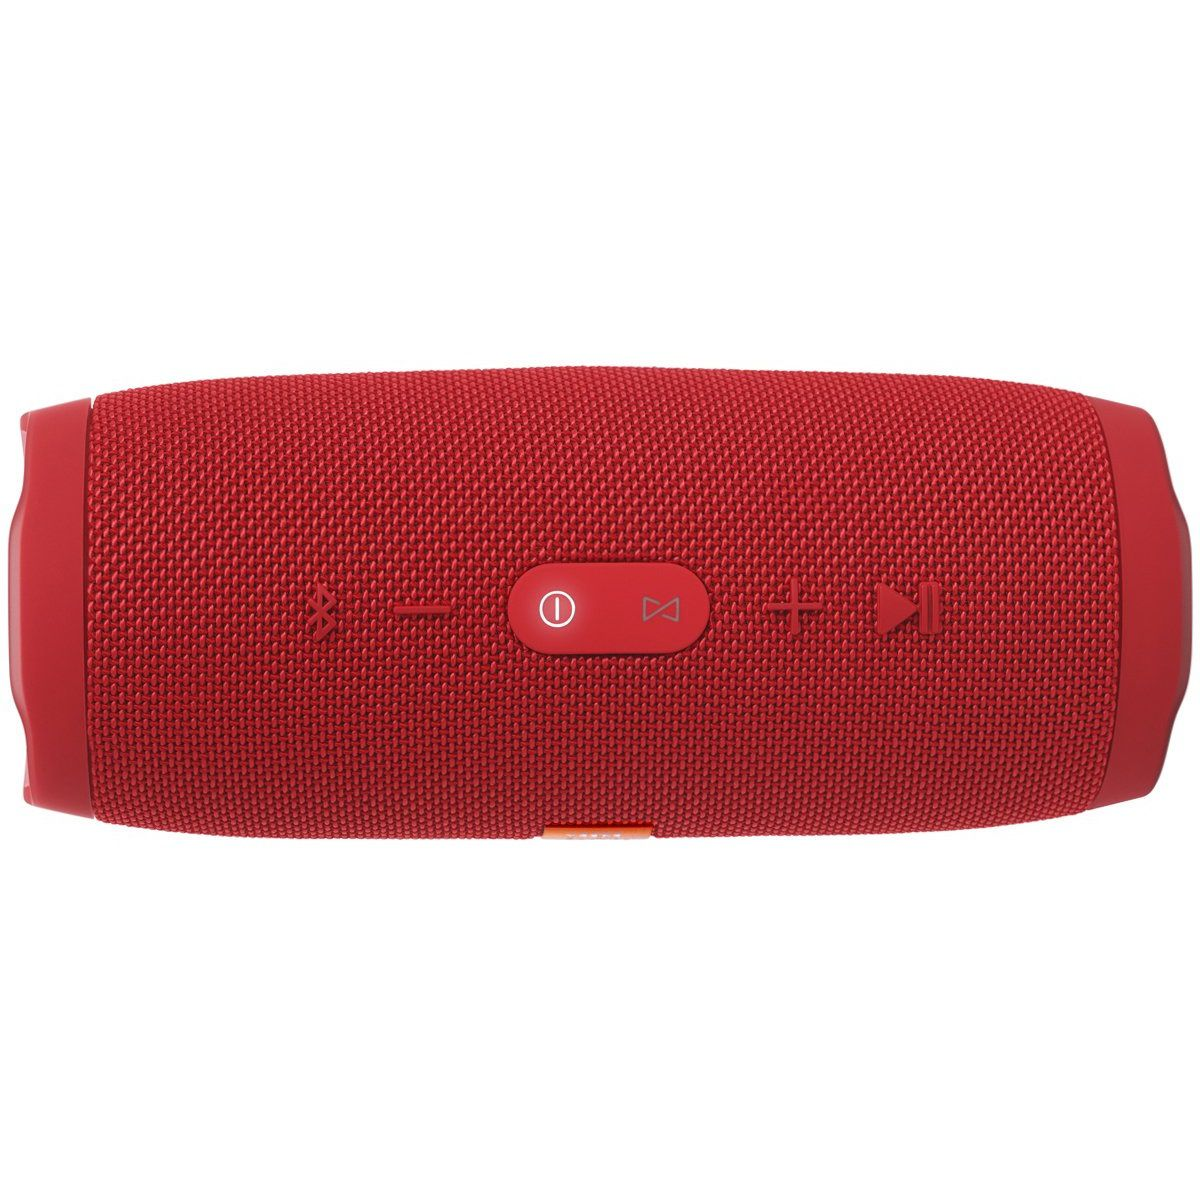 Caixa De Som Jbl Charge 3 Red Portatil Bluetooth